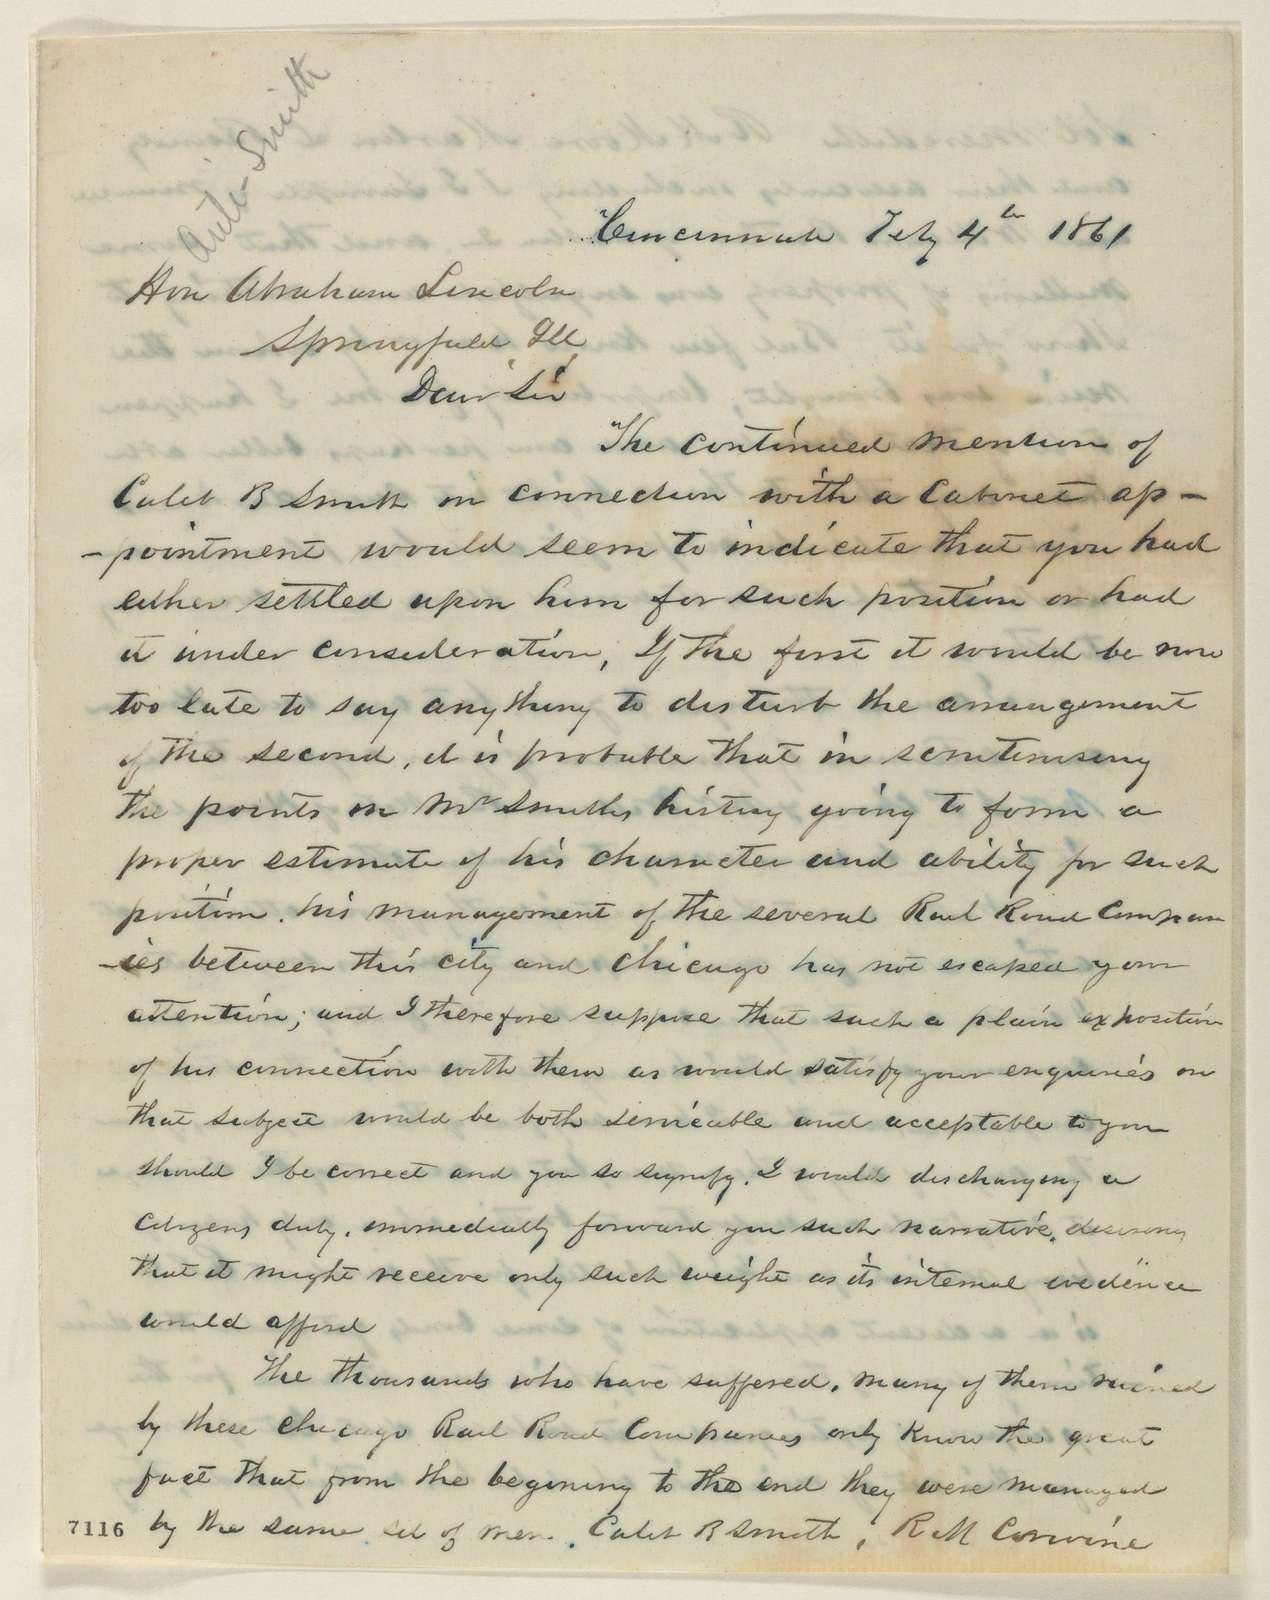 Abraham Lincoln papers: Series 1. General Correspondence. 1833-1916: Richard B. Pullan to Abraham Lincoln, Monday, February 04, 1861 (Opposes cabinet appointment for Caleb Smith)